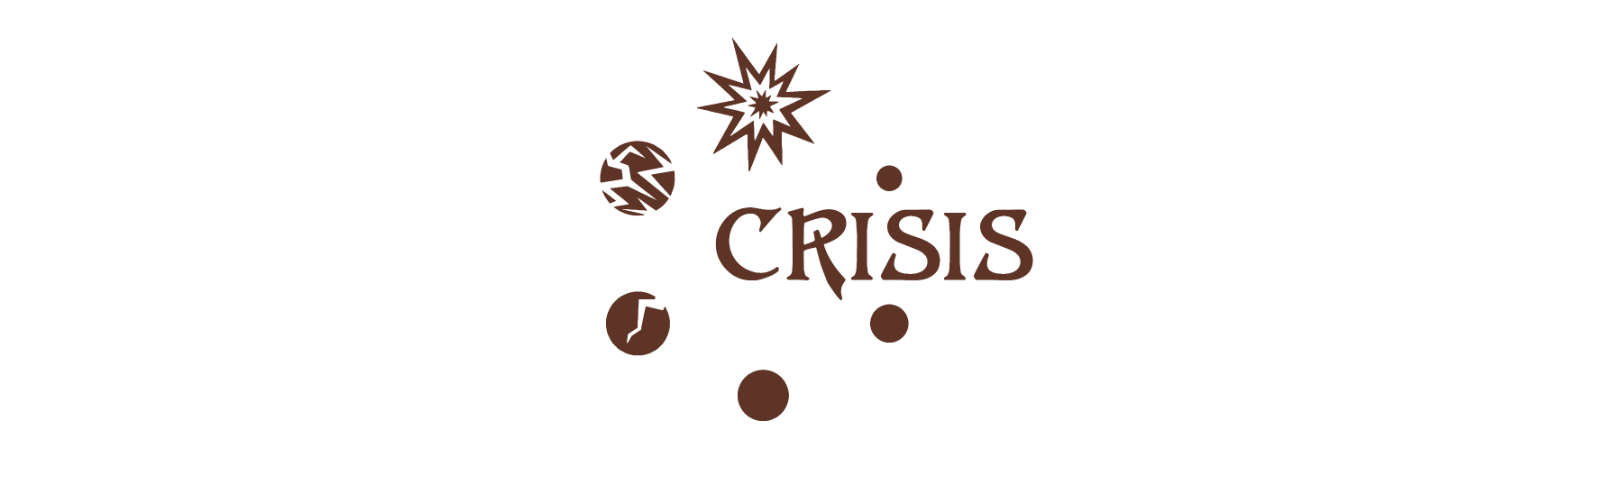 Cover of Crisis. The title is circled by spheres - some plain, some with lightning texture and one exploding.